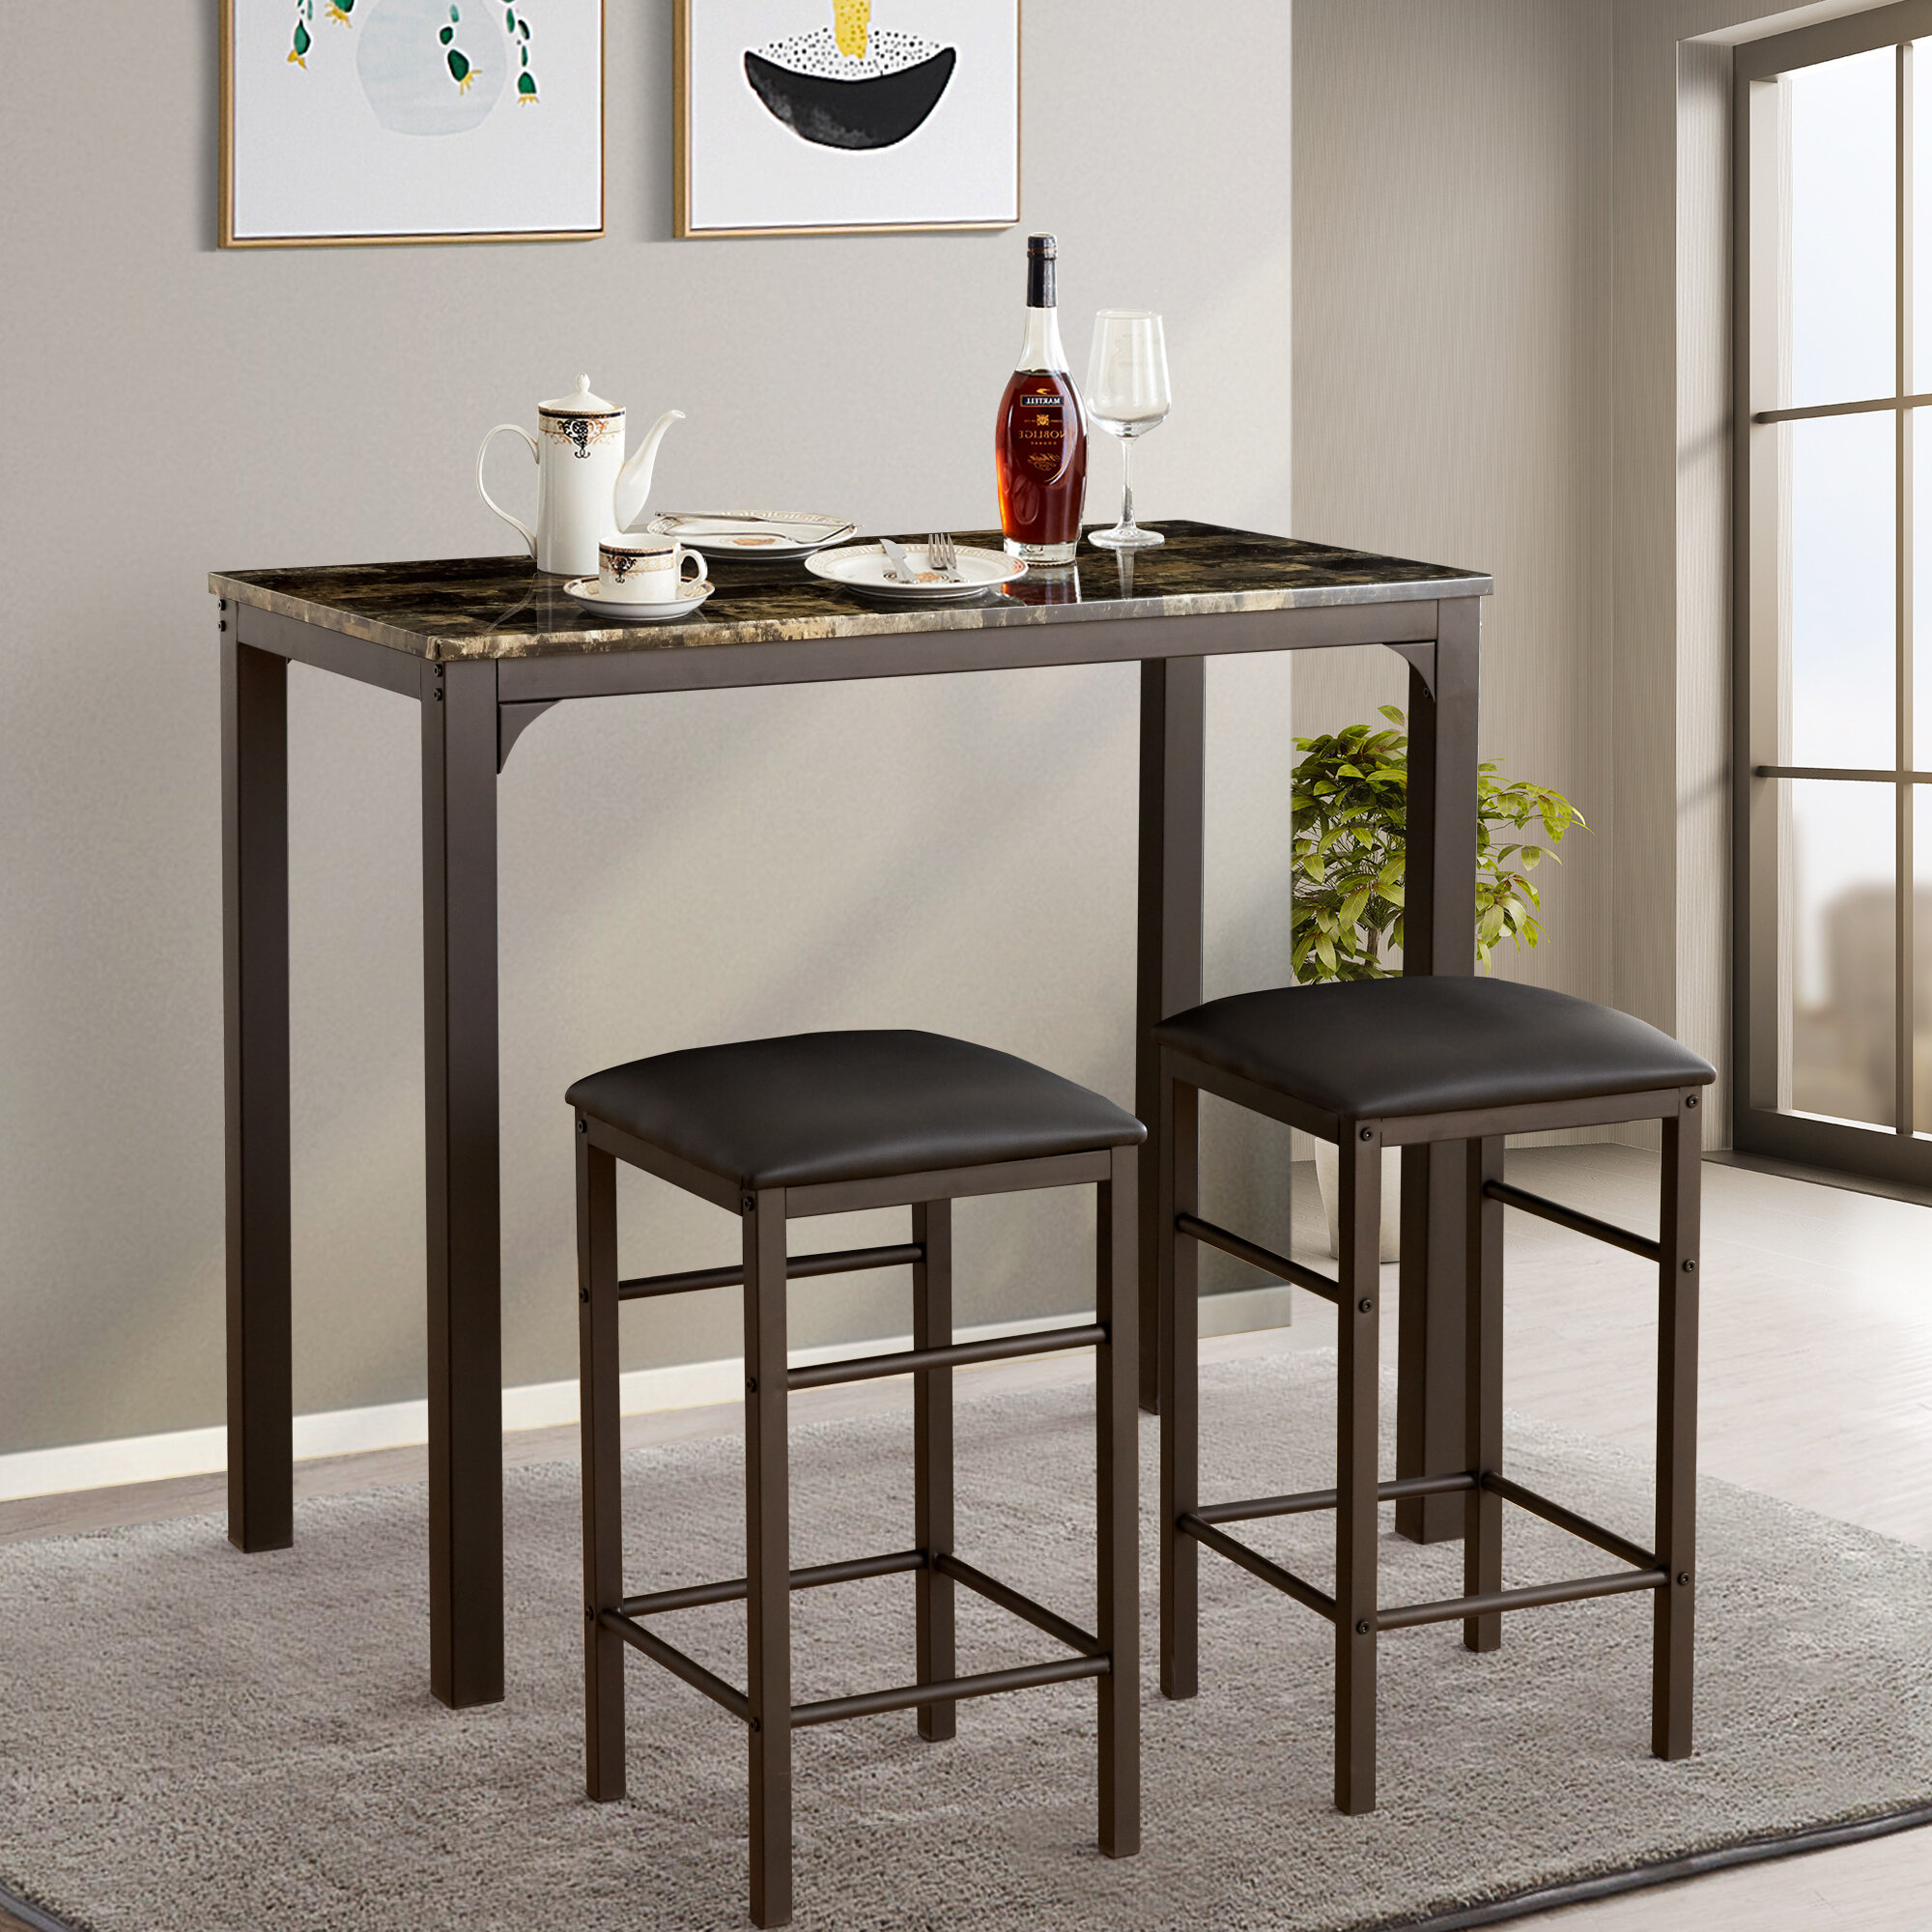 Tappahannock 3 Piece Counter Height Dining Set Within Best And Newest Lillard 3 Piece Breakfast Nook Dining Sets (Photo 10 of 20)